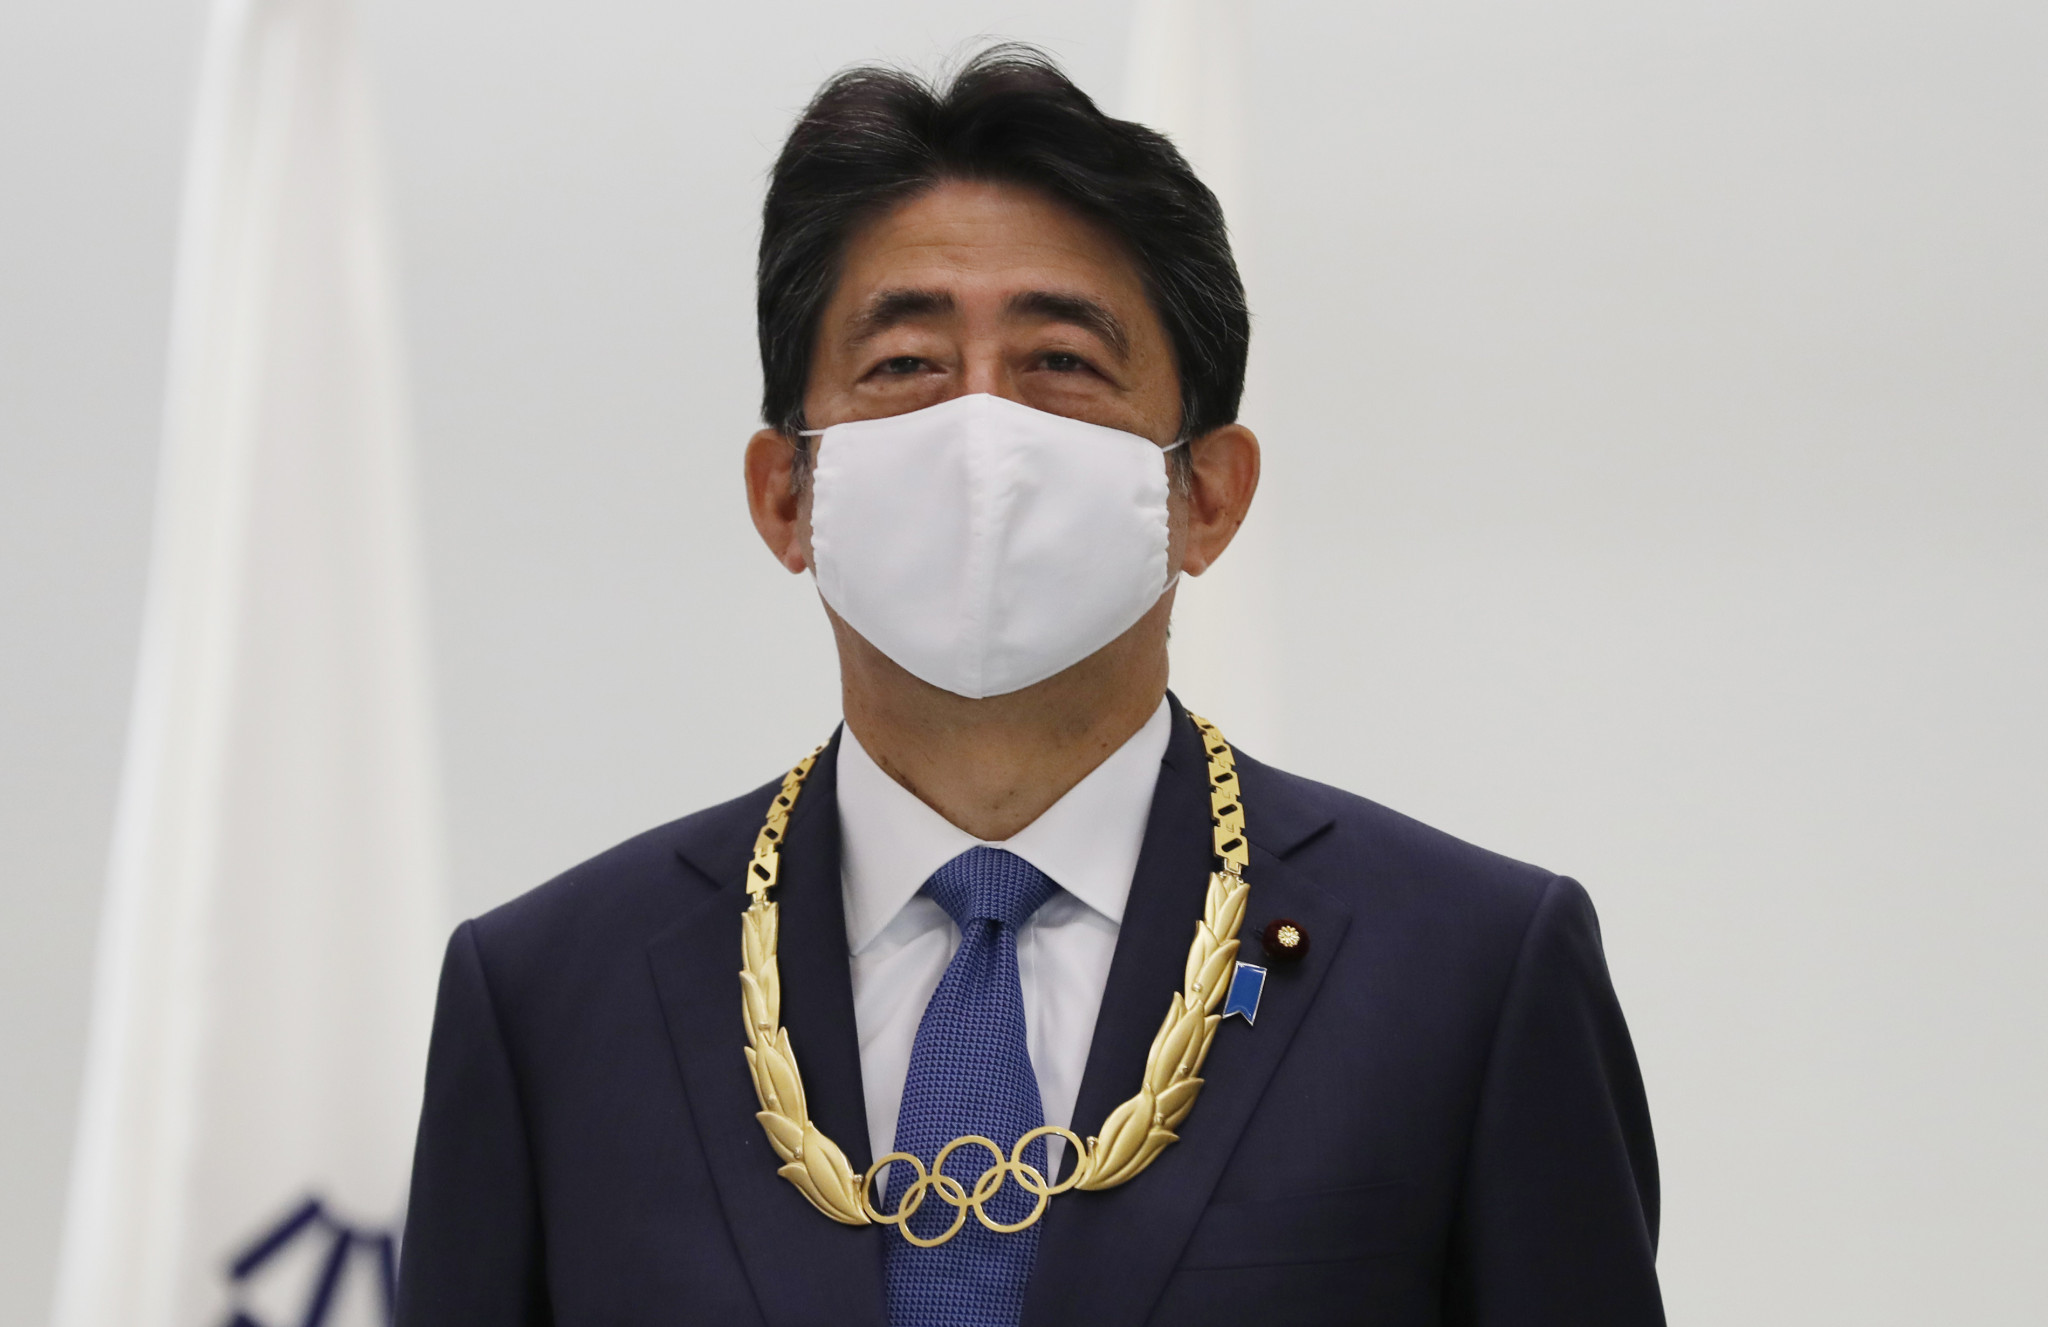 Former Prime Minister Abe set to miss Tokyo 2020 Olympics Opening Ceremony